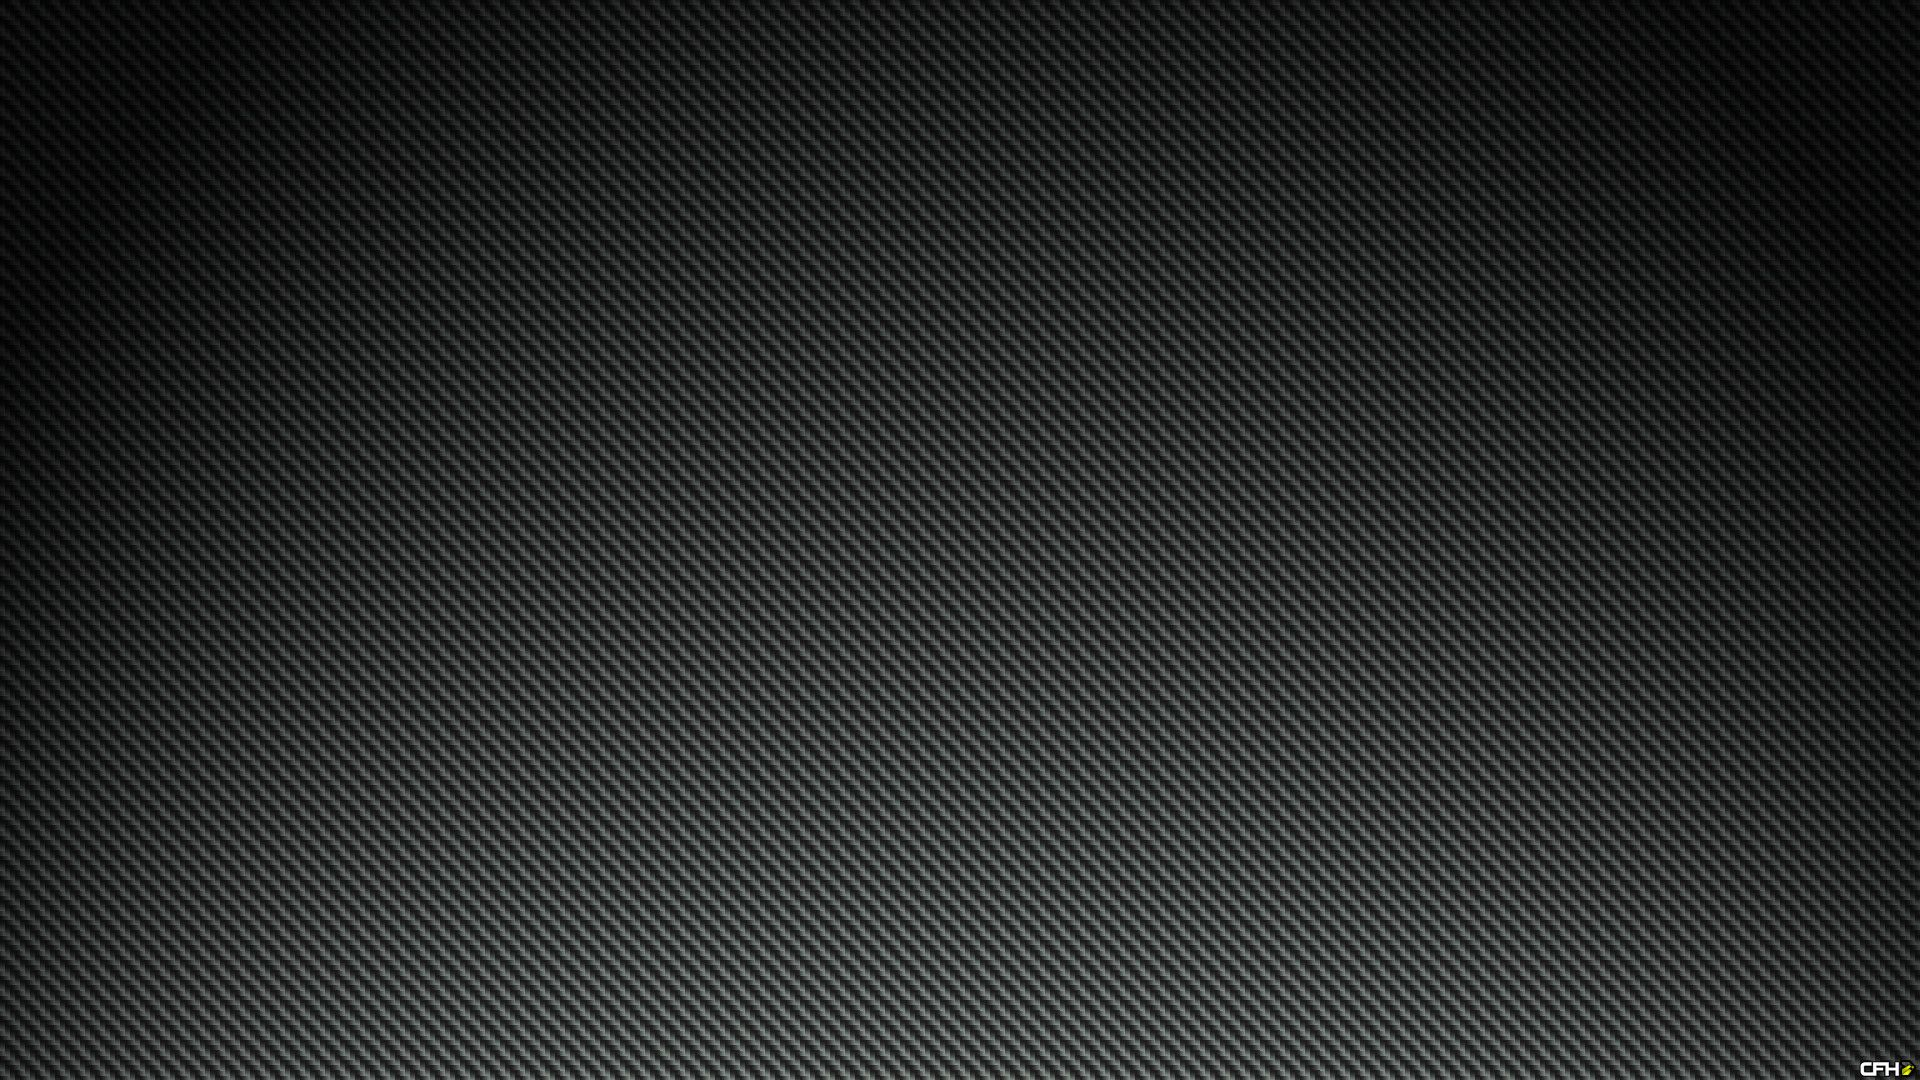 1920x1080 Carbon Fiber HD Wallpaper (74+ images)